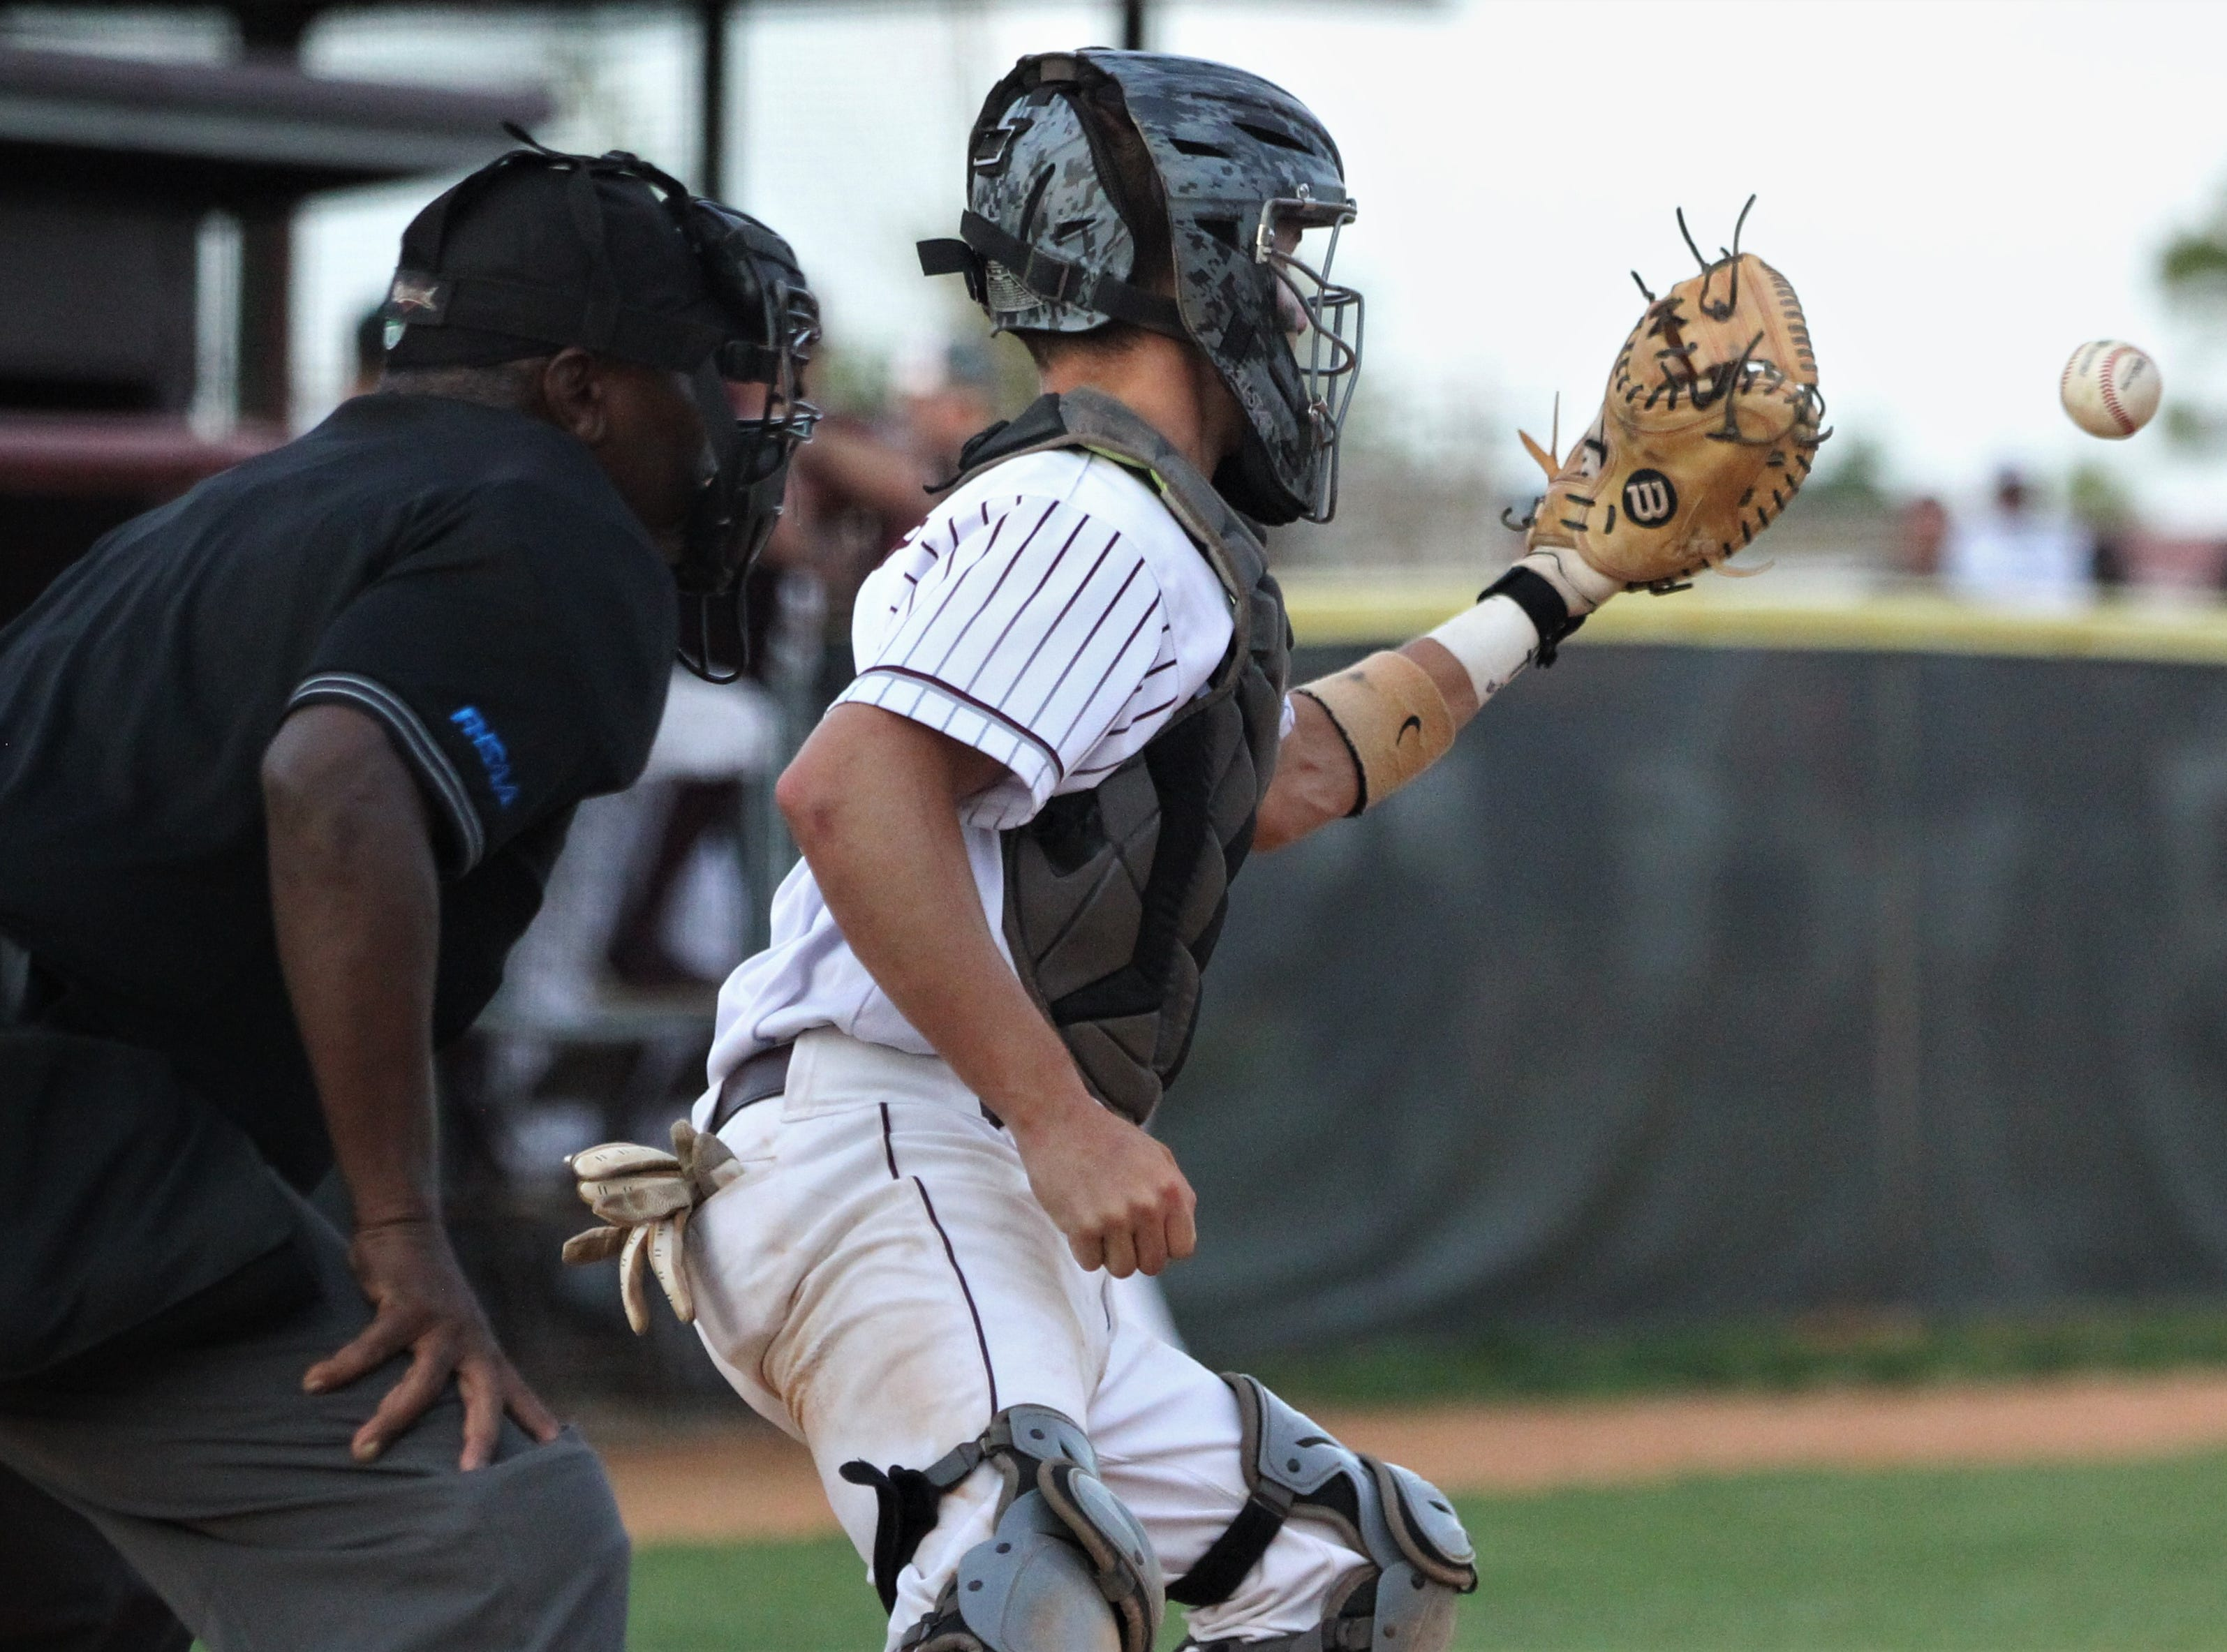 Madison County catcher Logan Lepper catches a high pitch as the Cowboys beat Union County 1-0 during a Region 2-1A semifinal on May 14, 2019.